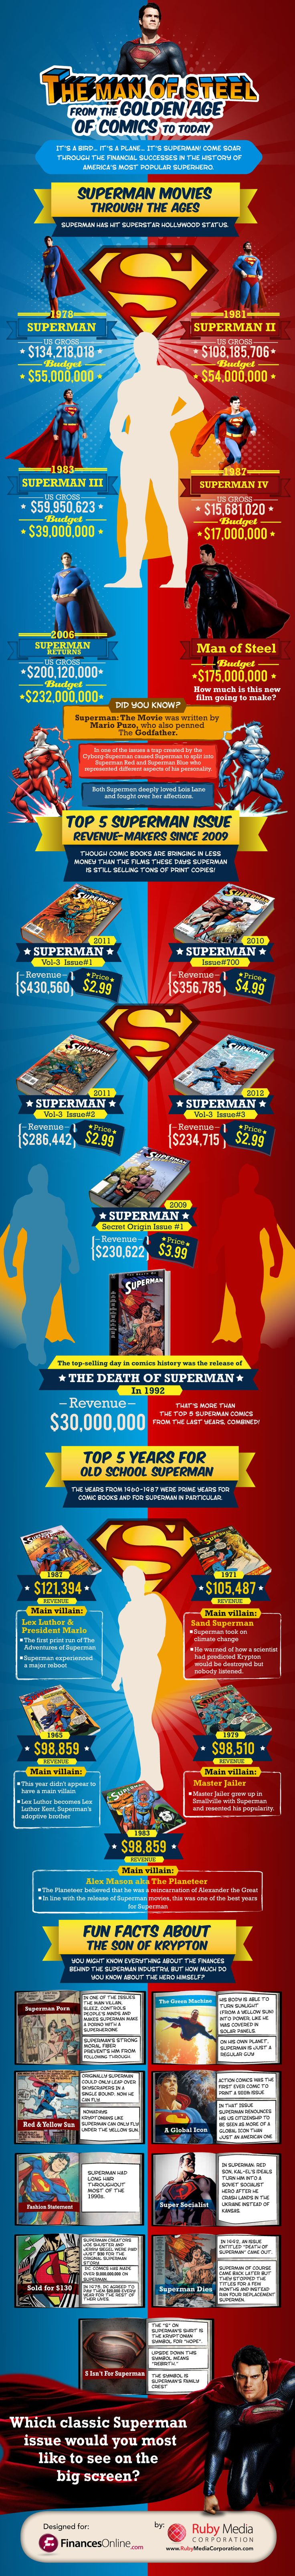 How Superman Became a Super Source of Revenue